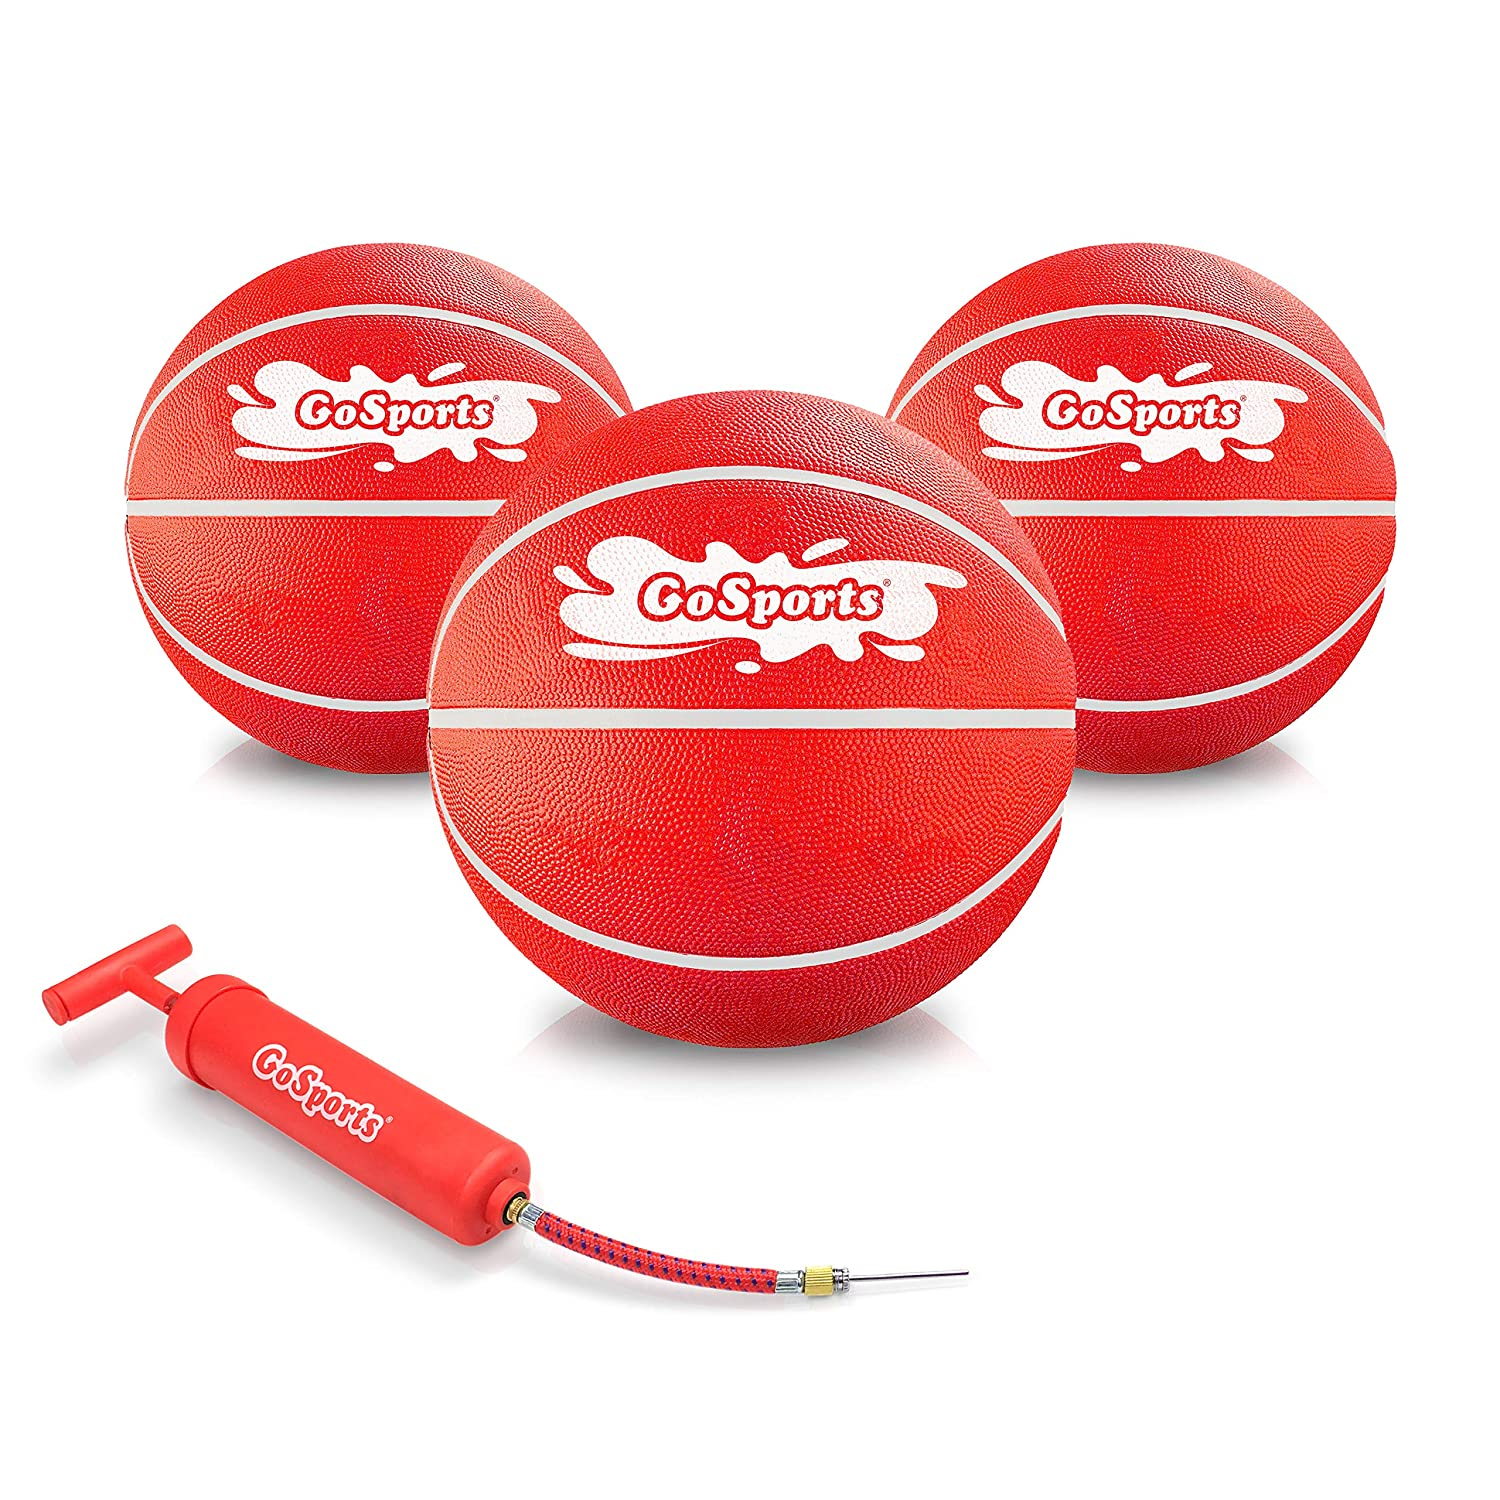 GoSports Swimming Pool Basketballs 3 Pack Great for Floating Water Basketball Hoops